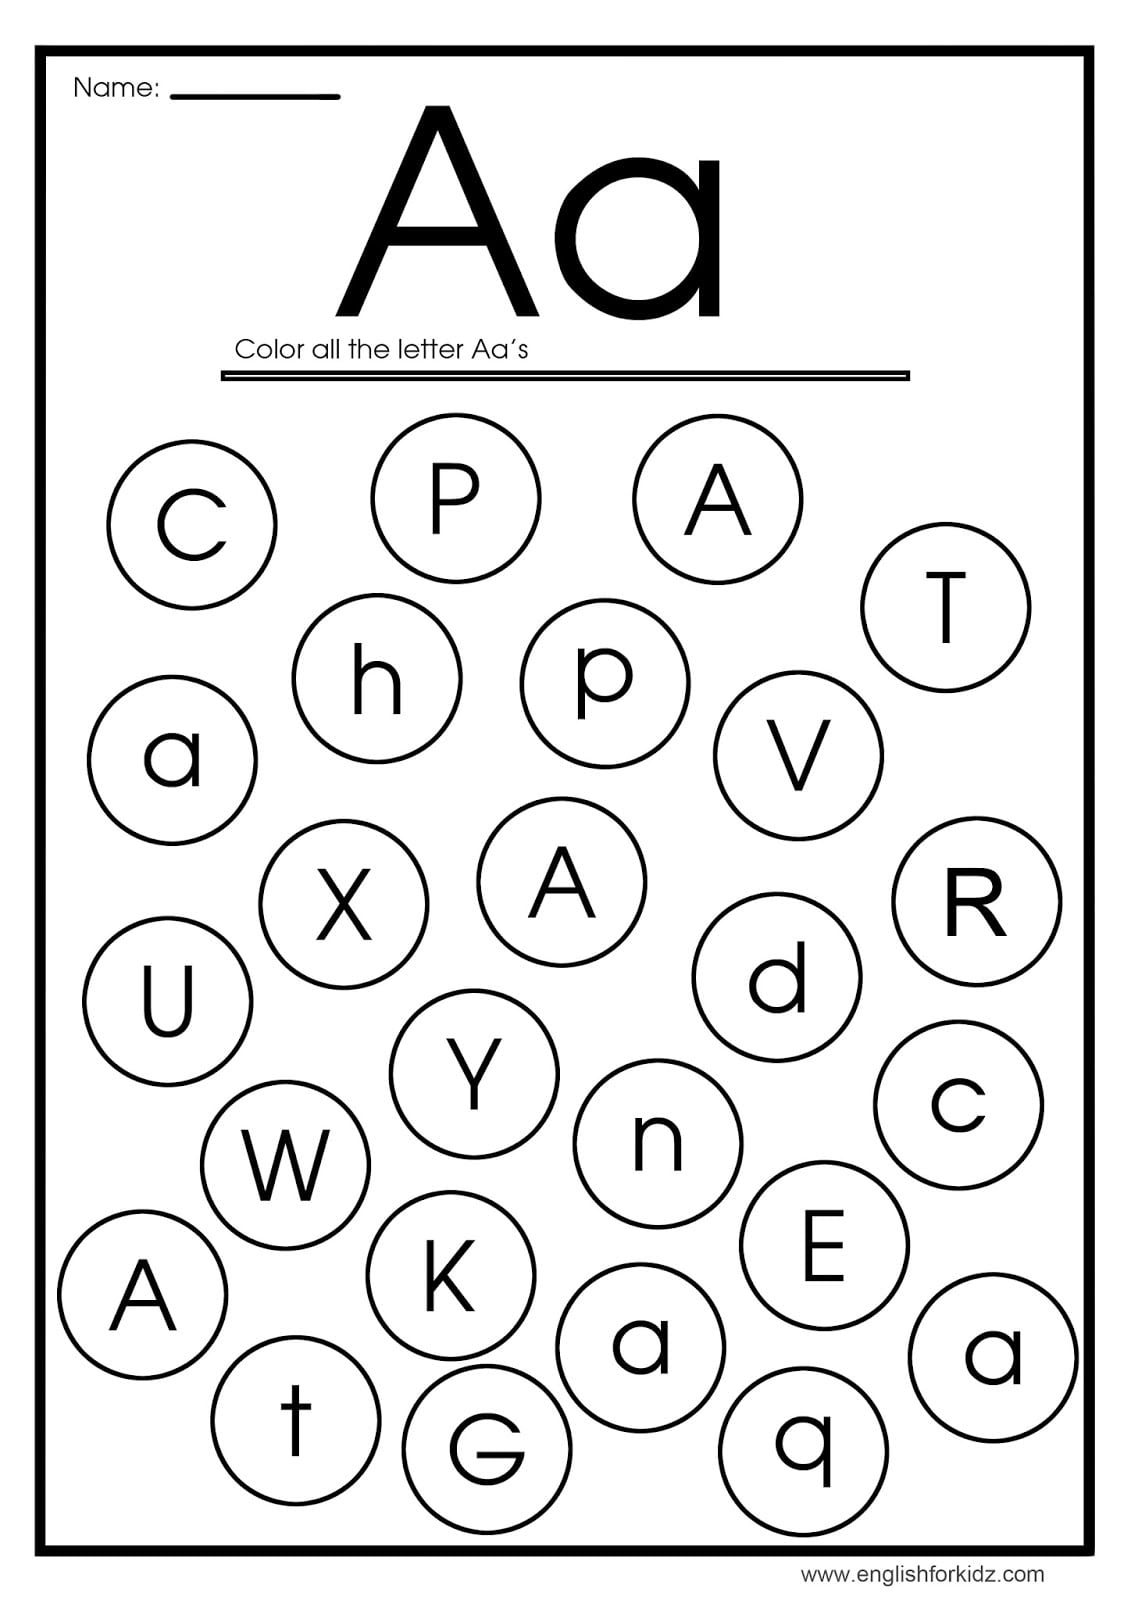 Letter A Worksheets, Flash Cards, Coloring Pages